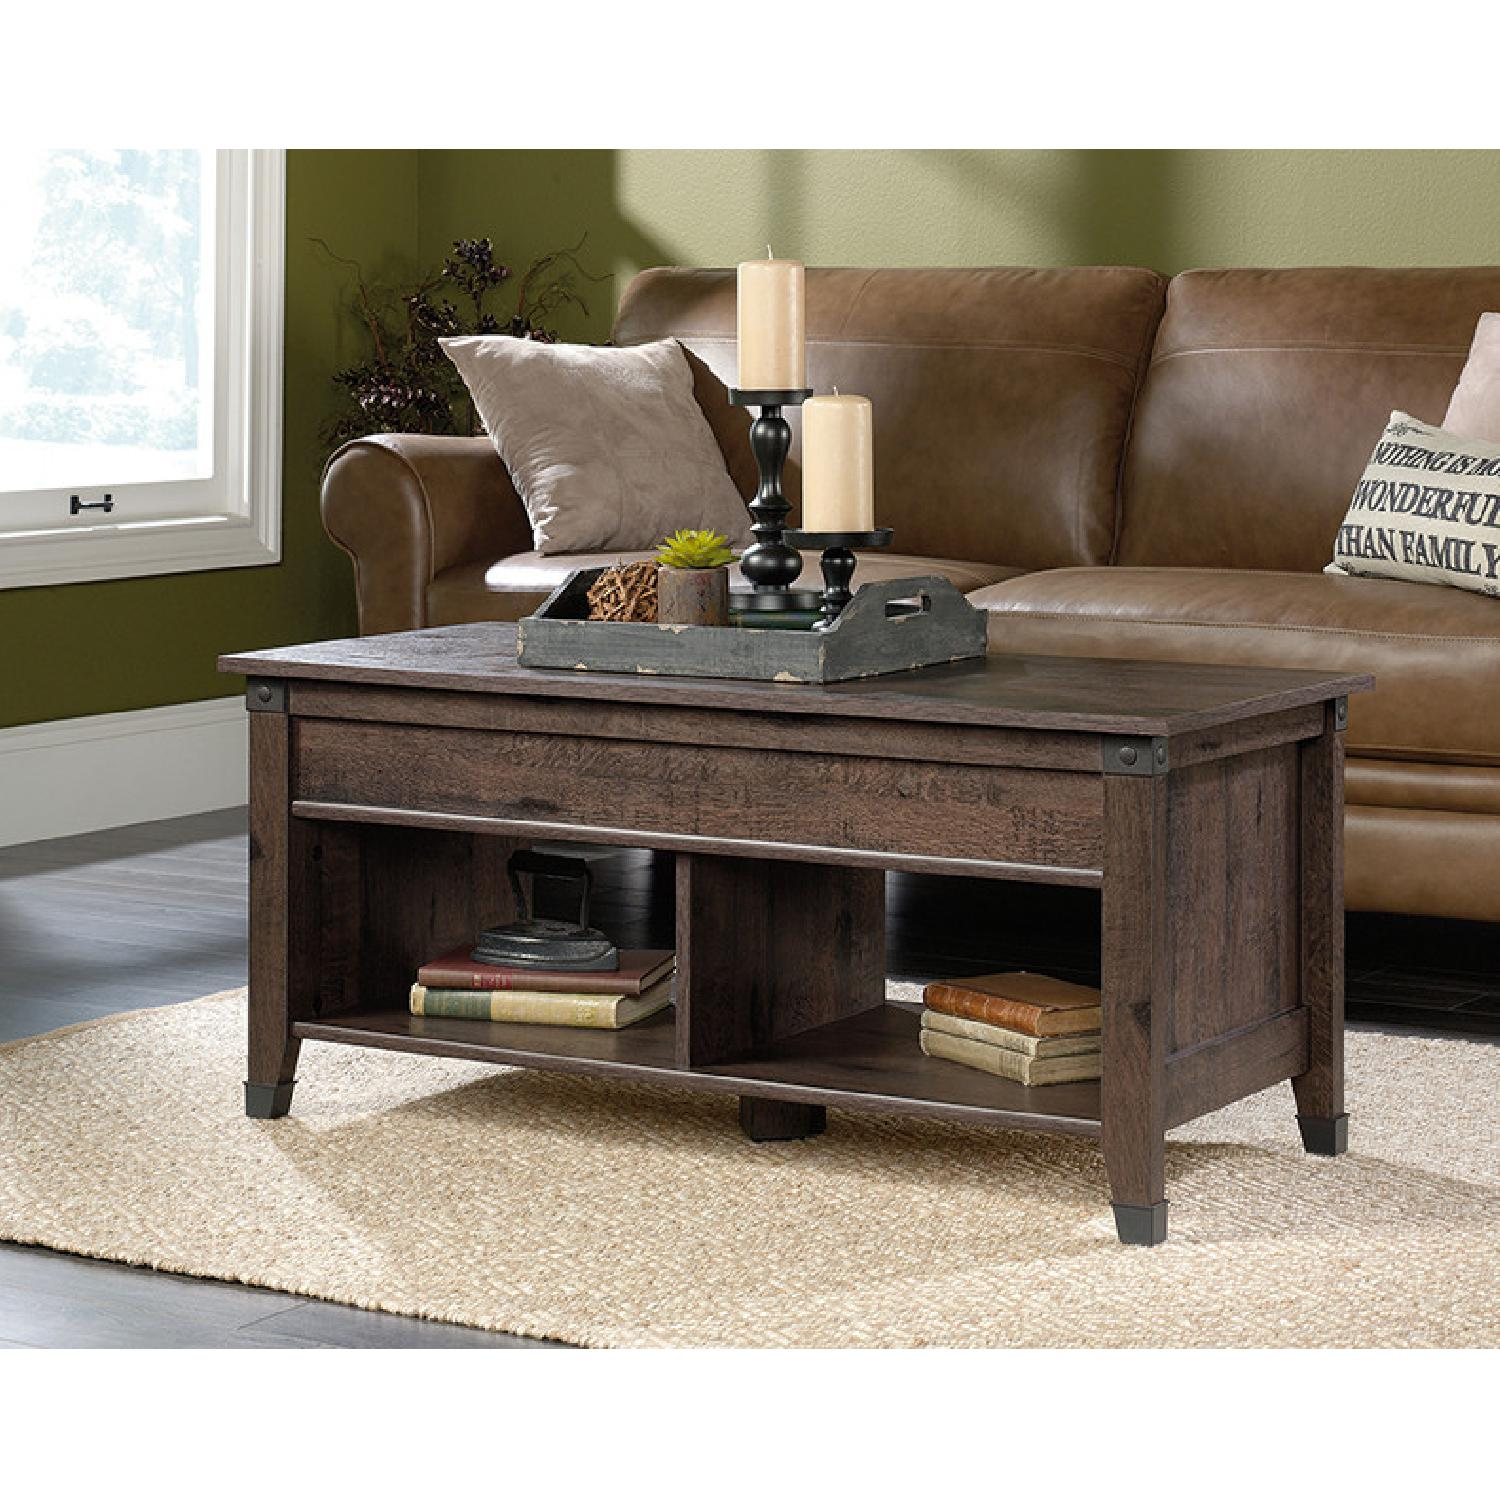 Sauder Carson Forge Lift Top Coffee Table - image-2